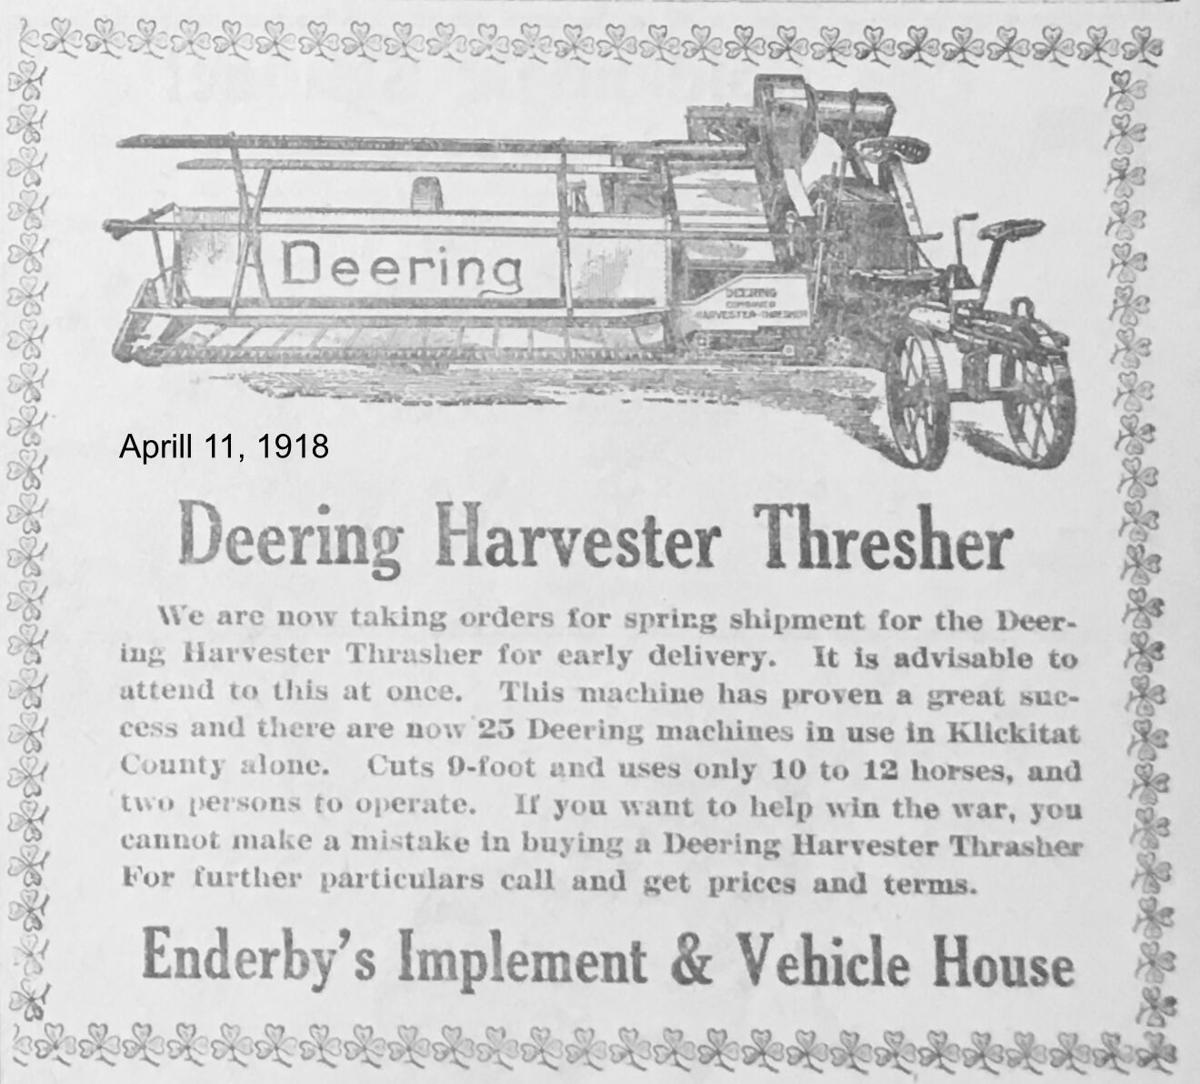 Deering Harvester Thresher Ad